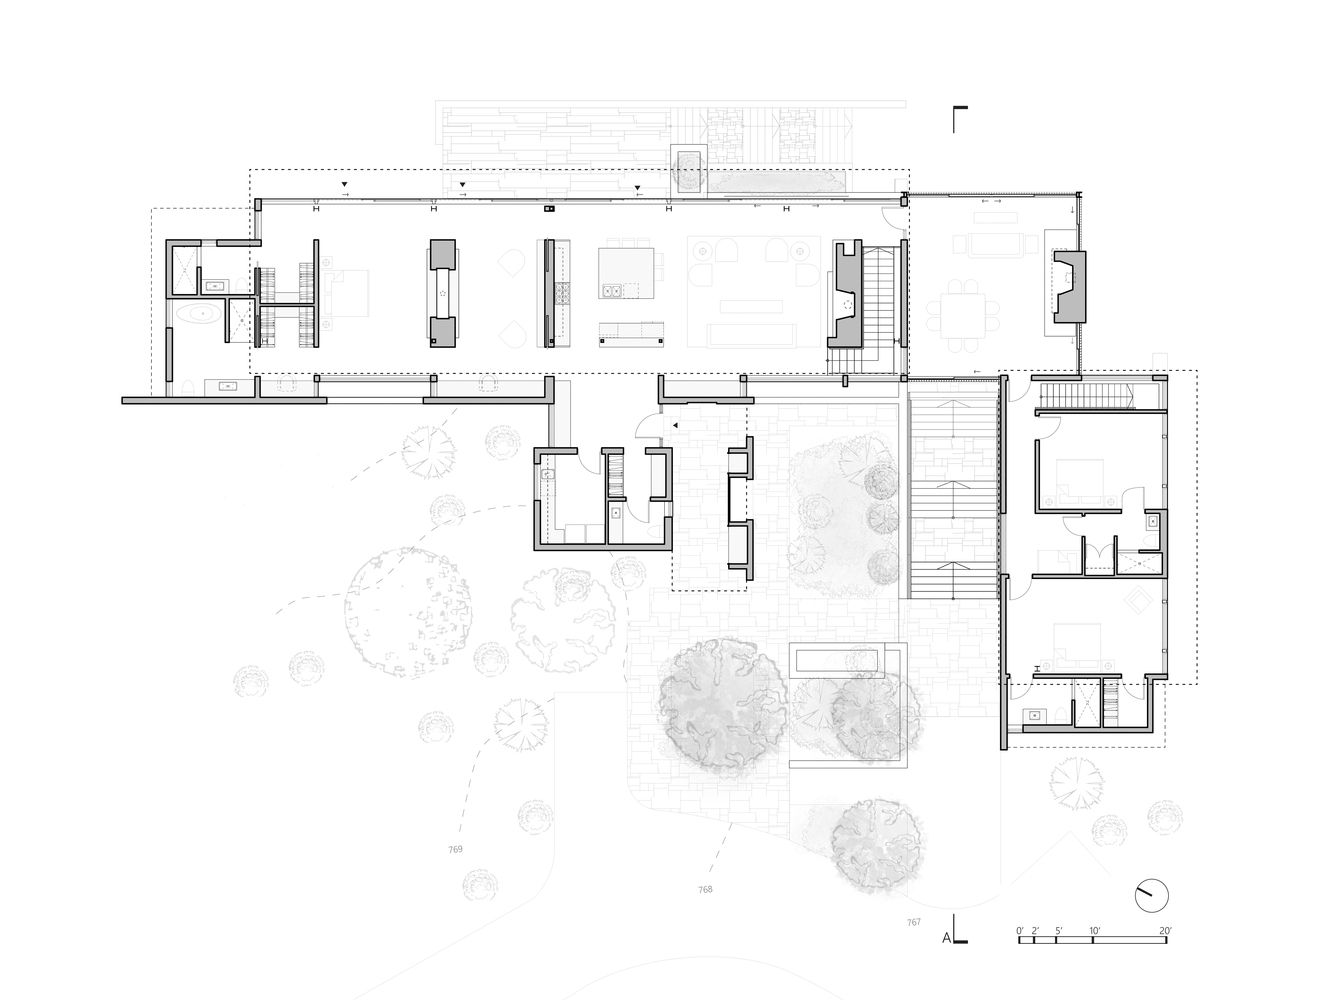 Gallery Of Bridge House Vg Architects 17 In 2020 My House Plans Architect Architecture House